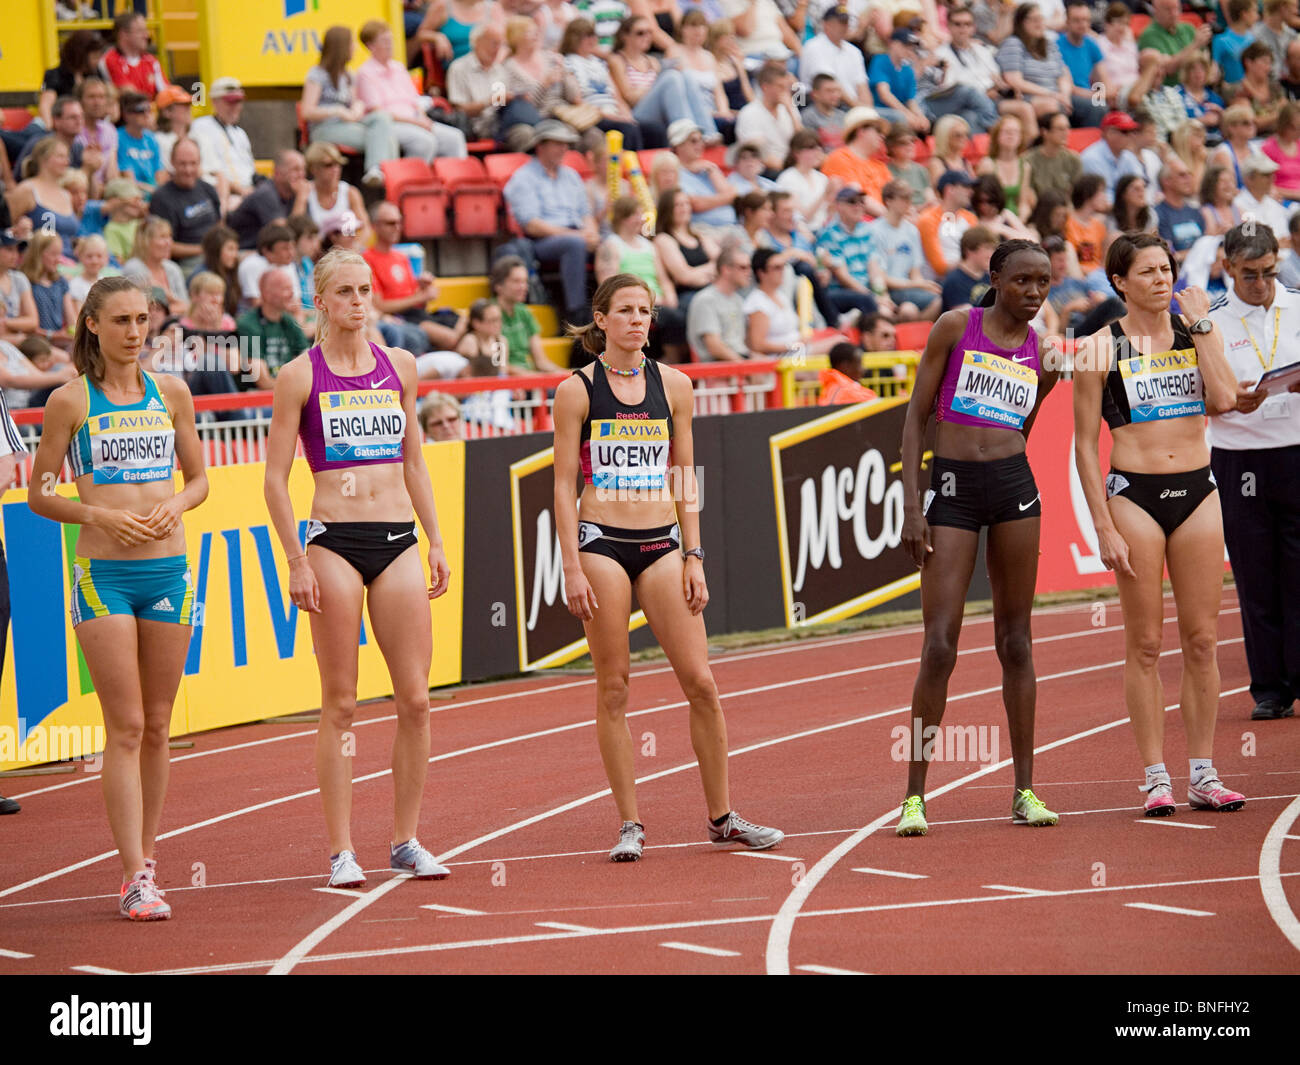 Runners preparing for womens 1500meters in IAAF Diamond League in Gateshead 2010 - Stock Image